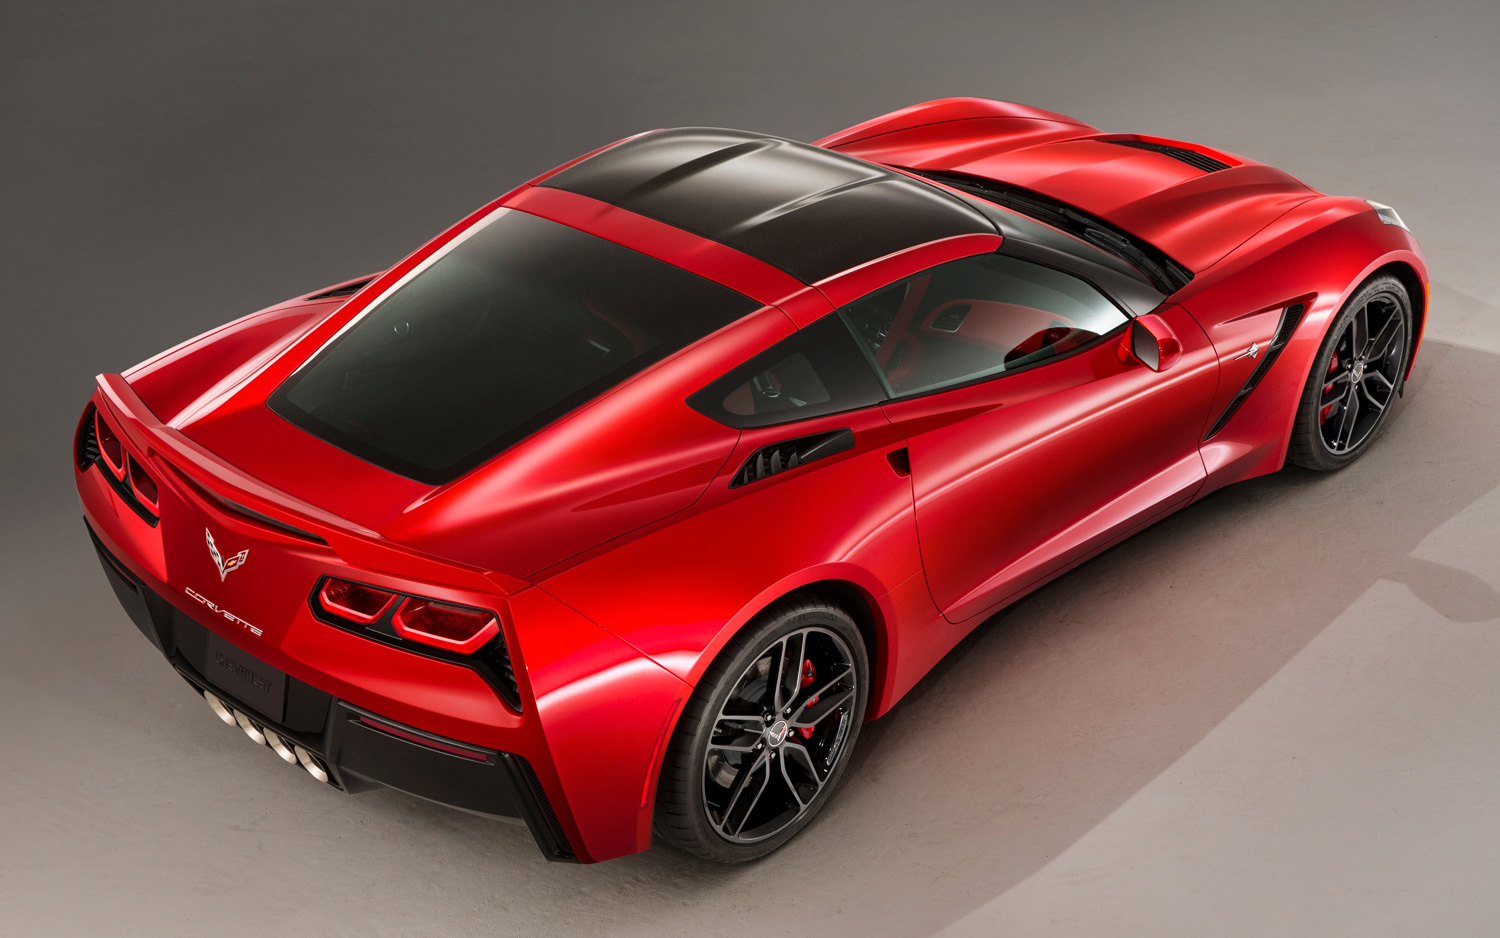 Chevrolet corvette 2014 photo - 2